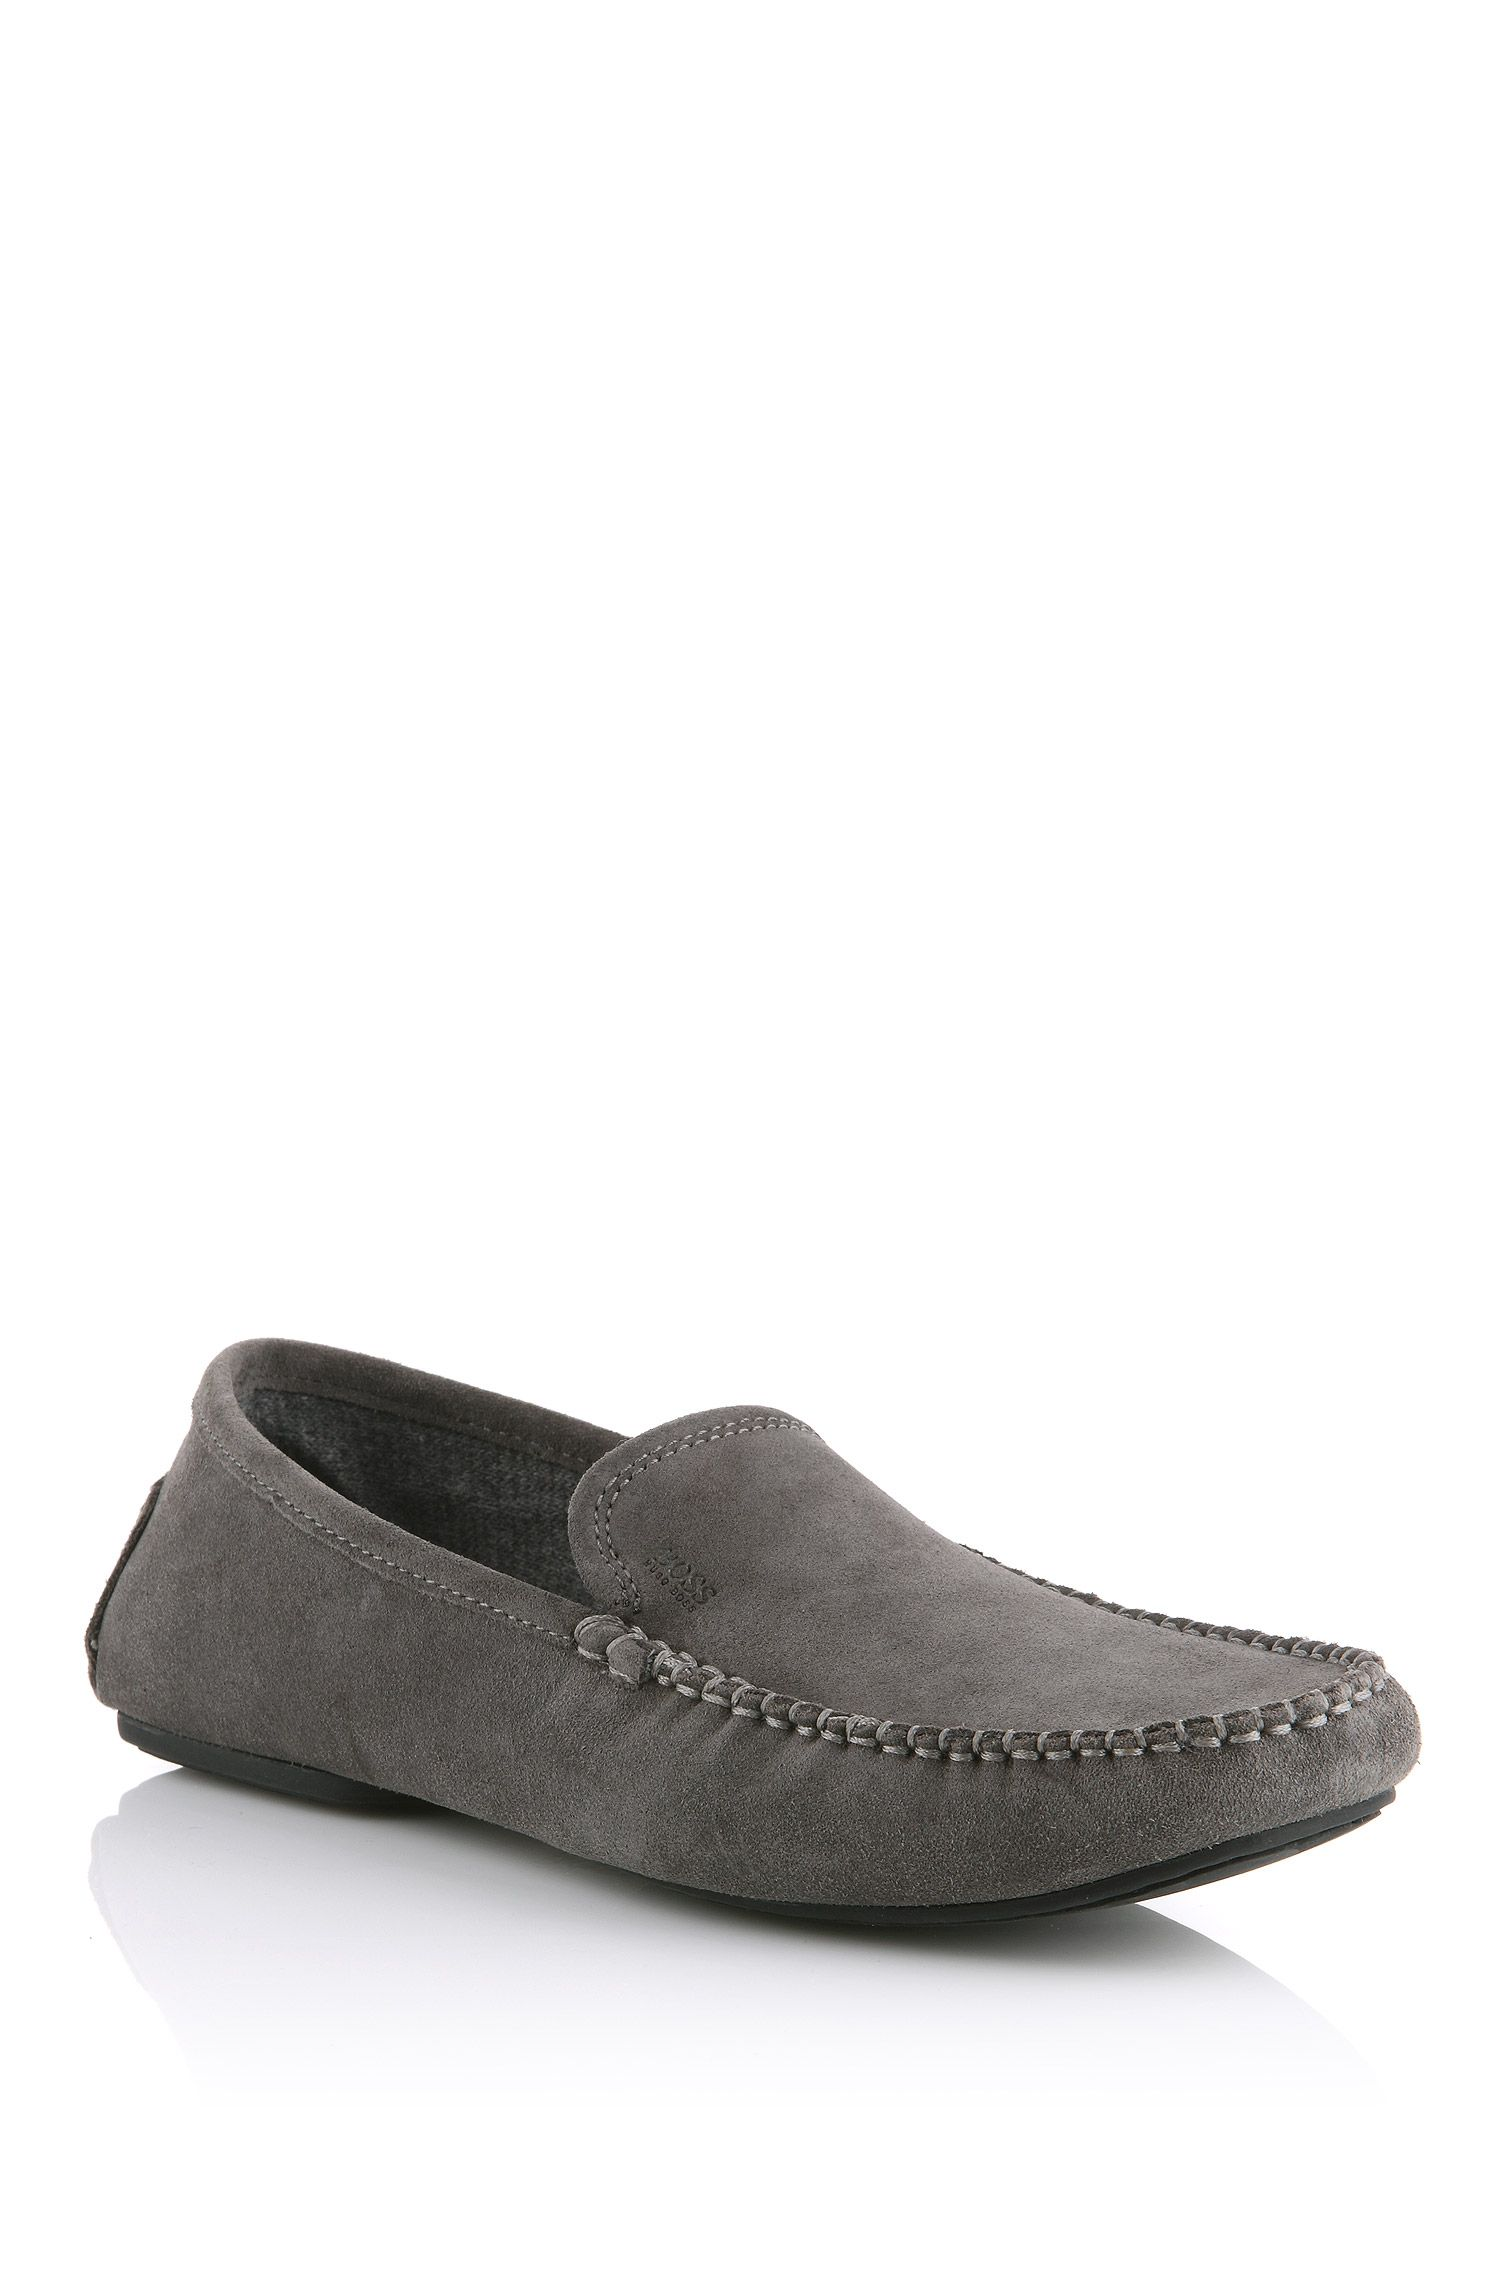 Chaussons, Remor